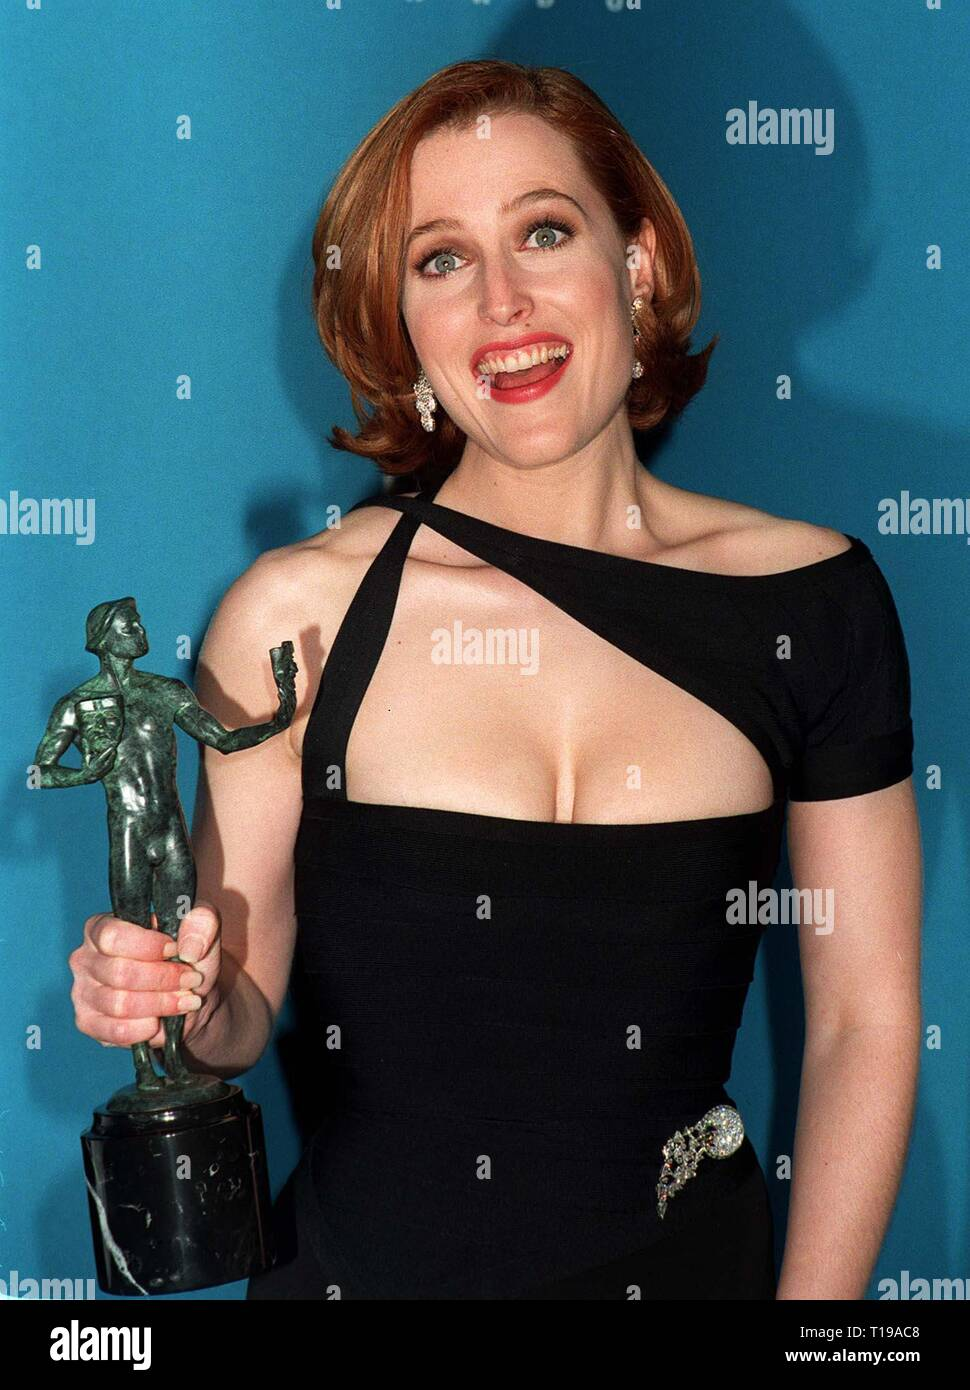 LOS ANGELES, CA. February 23, 1997: X-Files star GILLIAN ANDERSON with her Screen Actors Guild Award for Favorite Actress in a TV Dramatic Series. Pix: PAUL SMITH - Stock Image